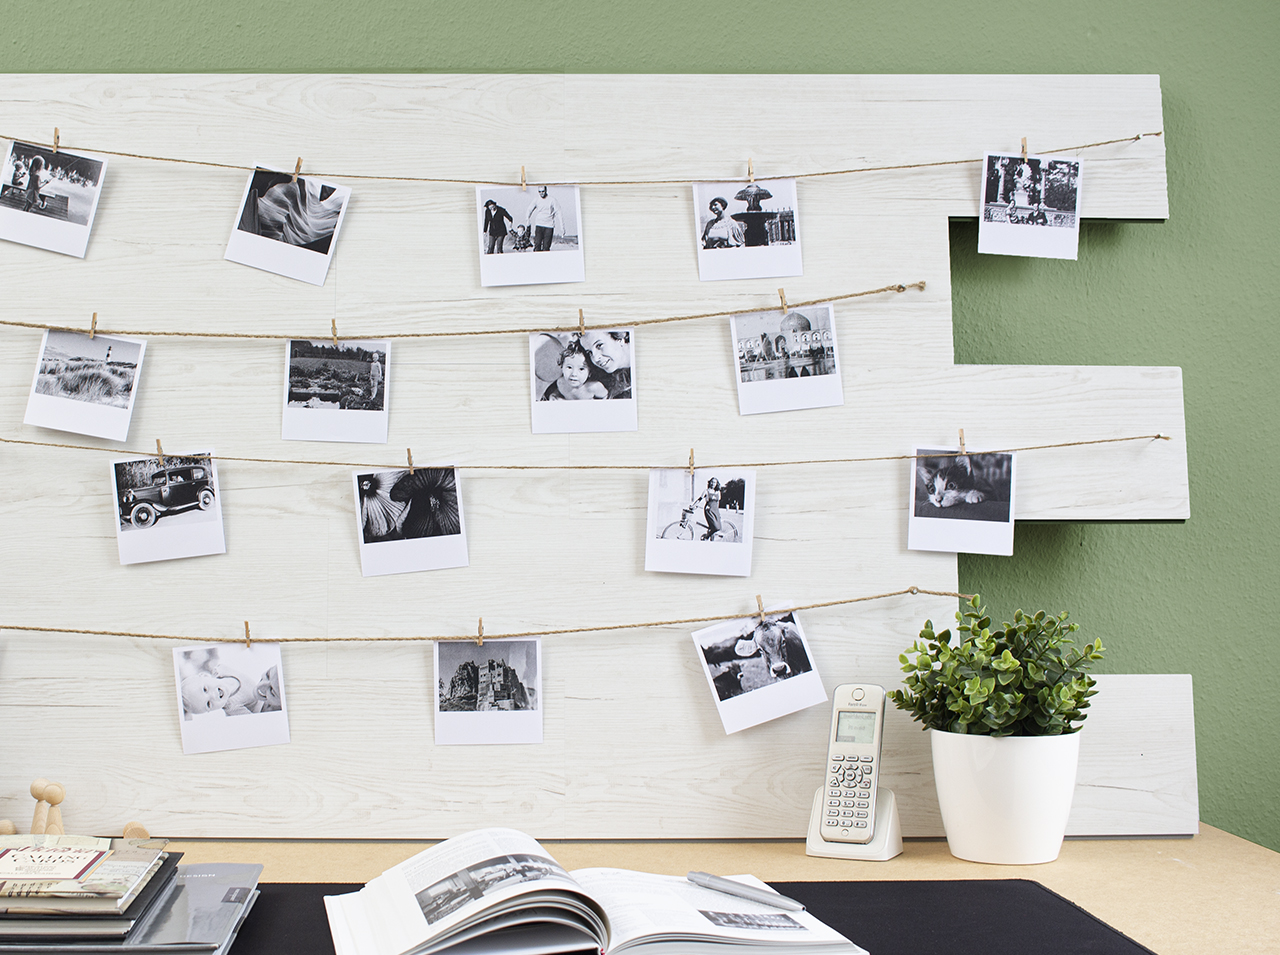 With Tile Art plank wall tiles in Pino Aurelio effect, DIY photo wall decorated with photos.